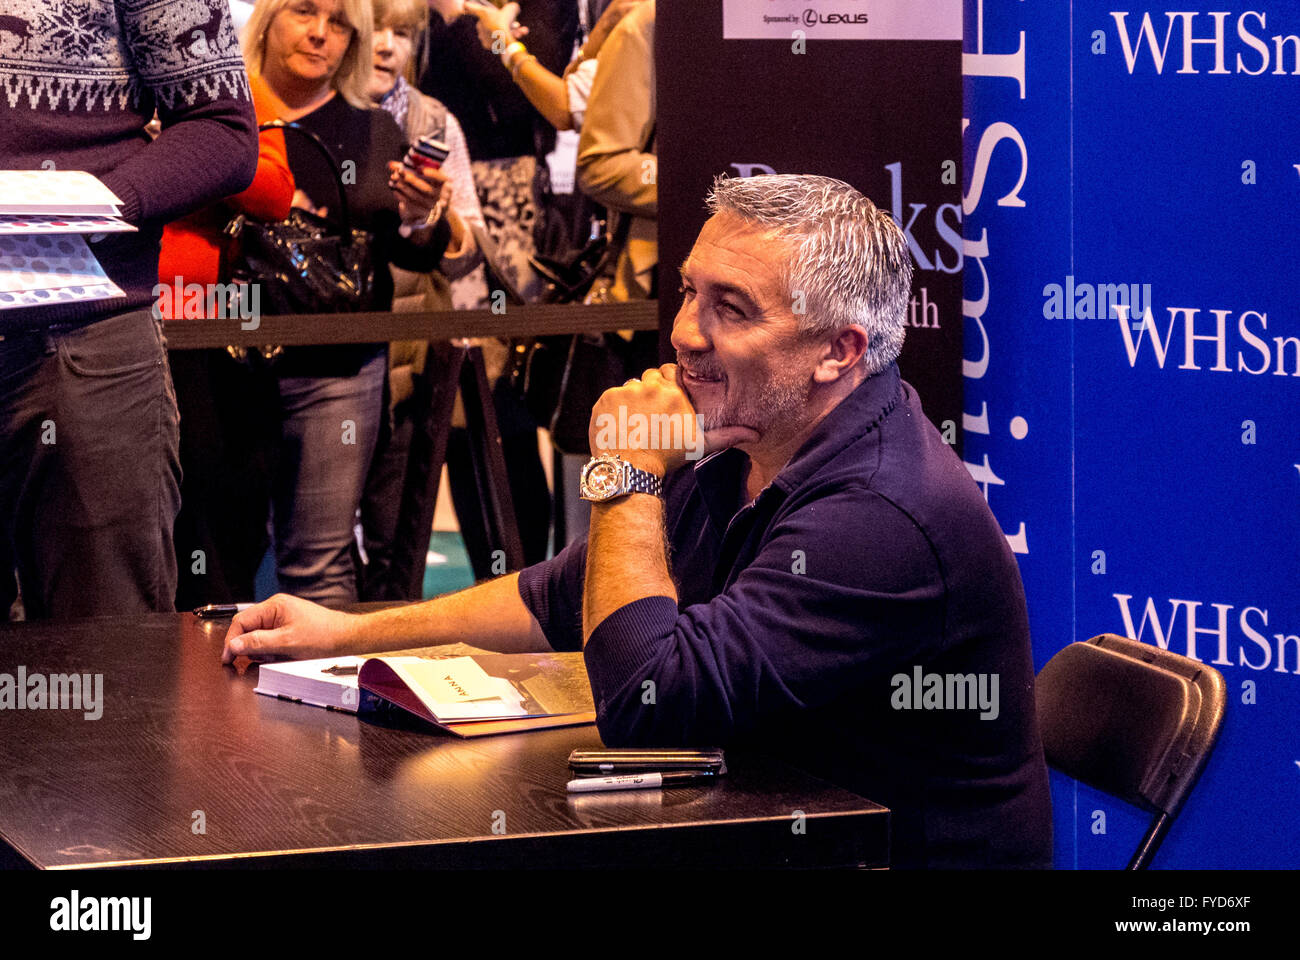 Paul Hollywood, celebrity appearance at W.H. Smith book signing event, UK. - Stock Image